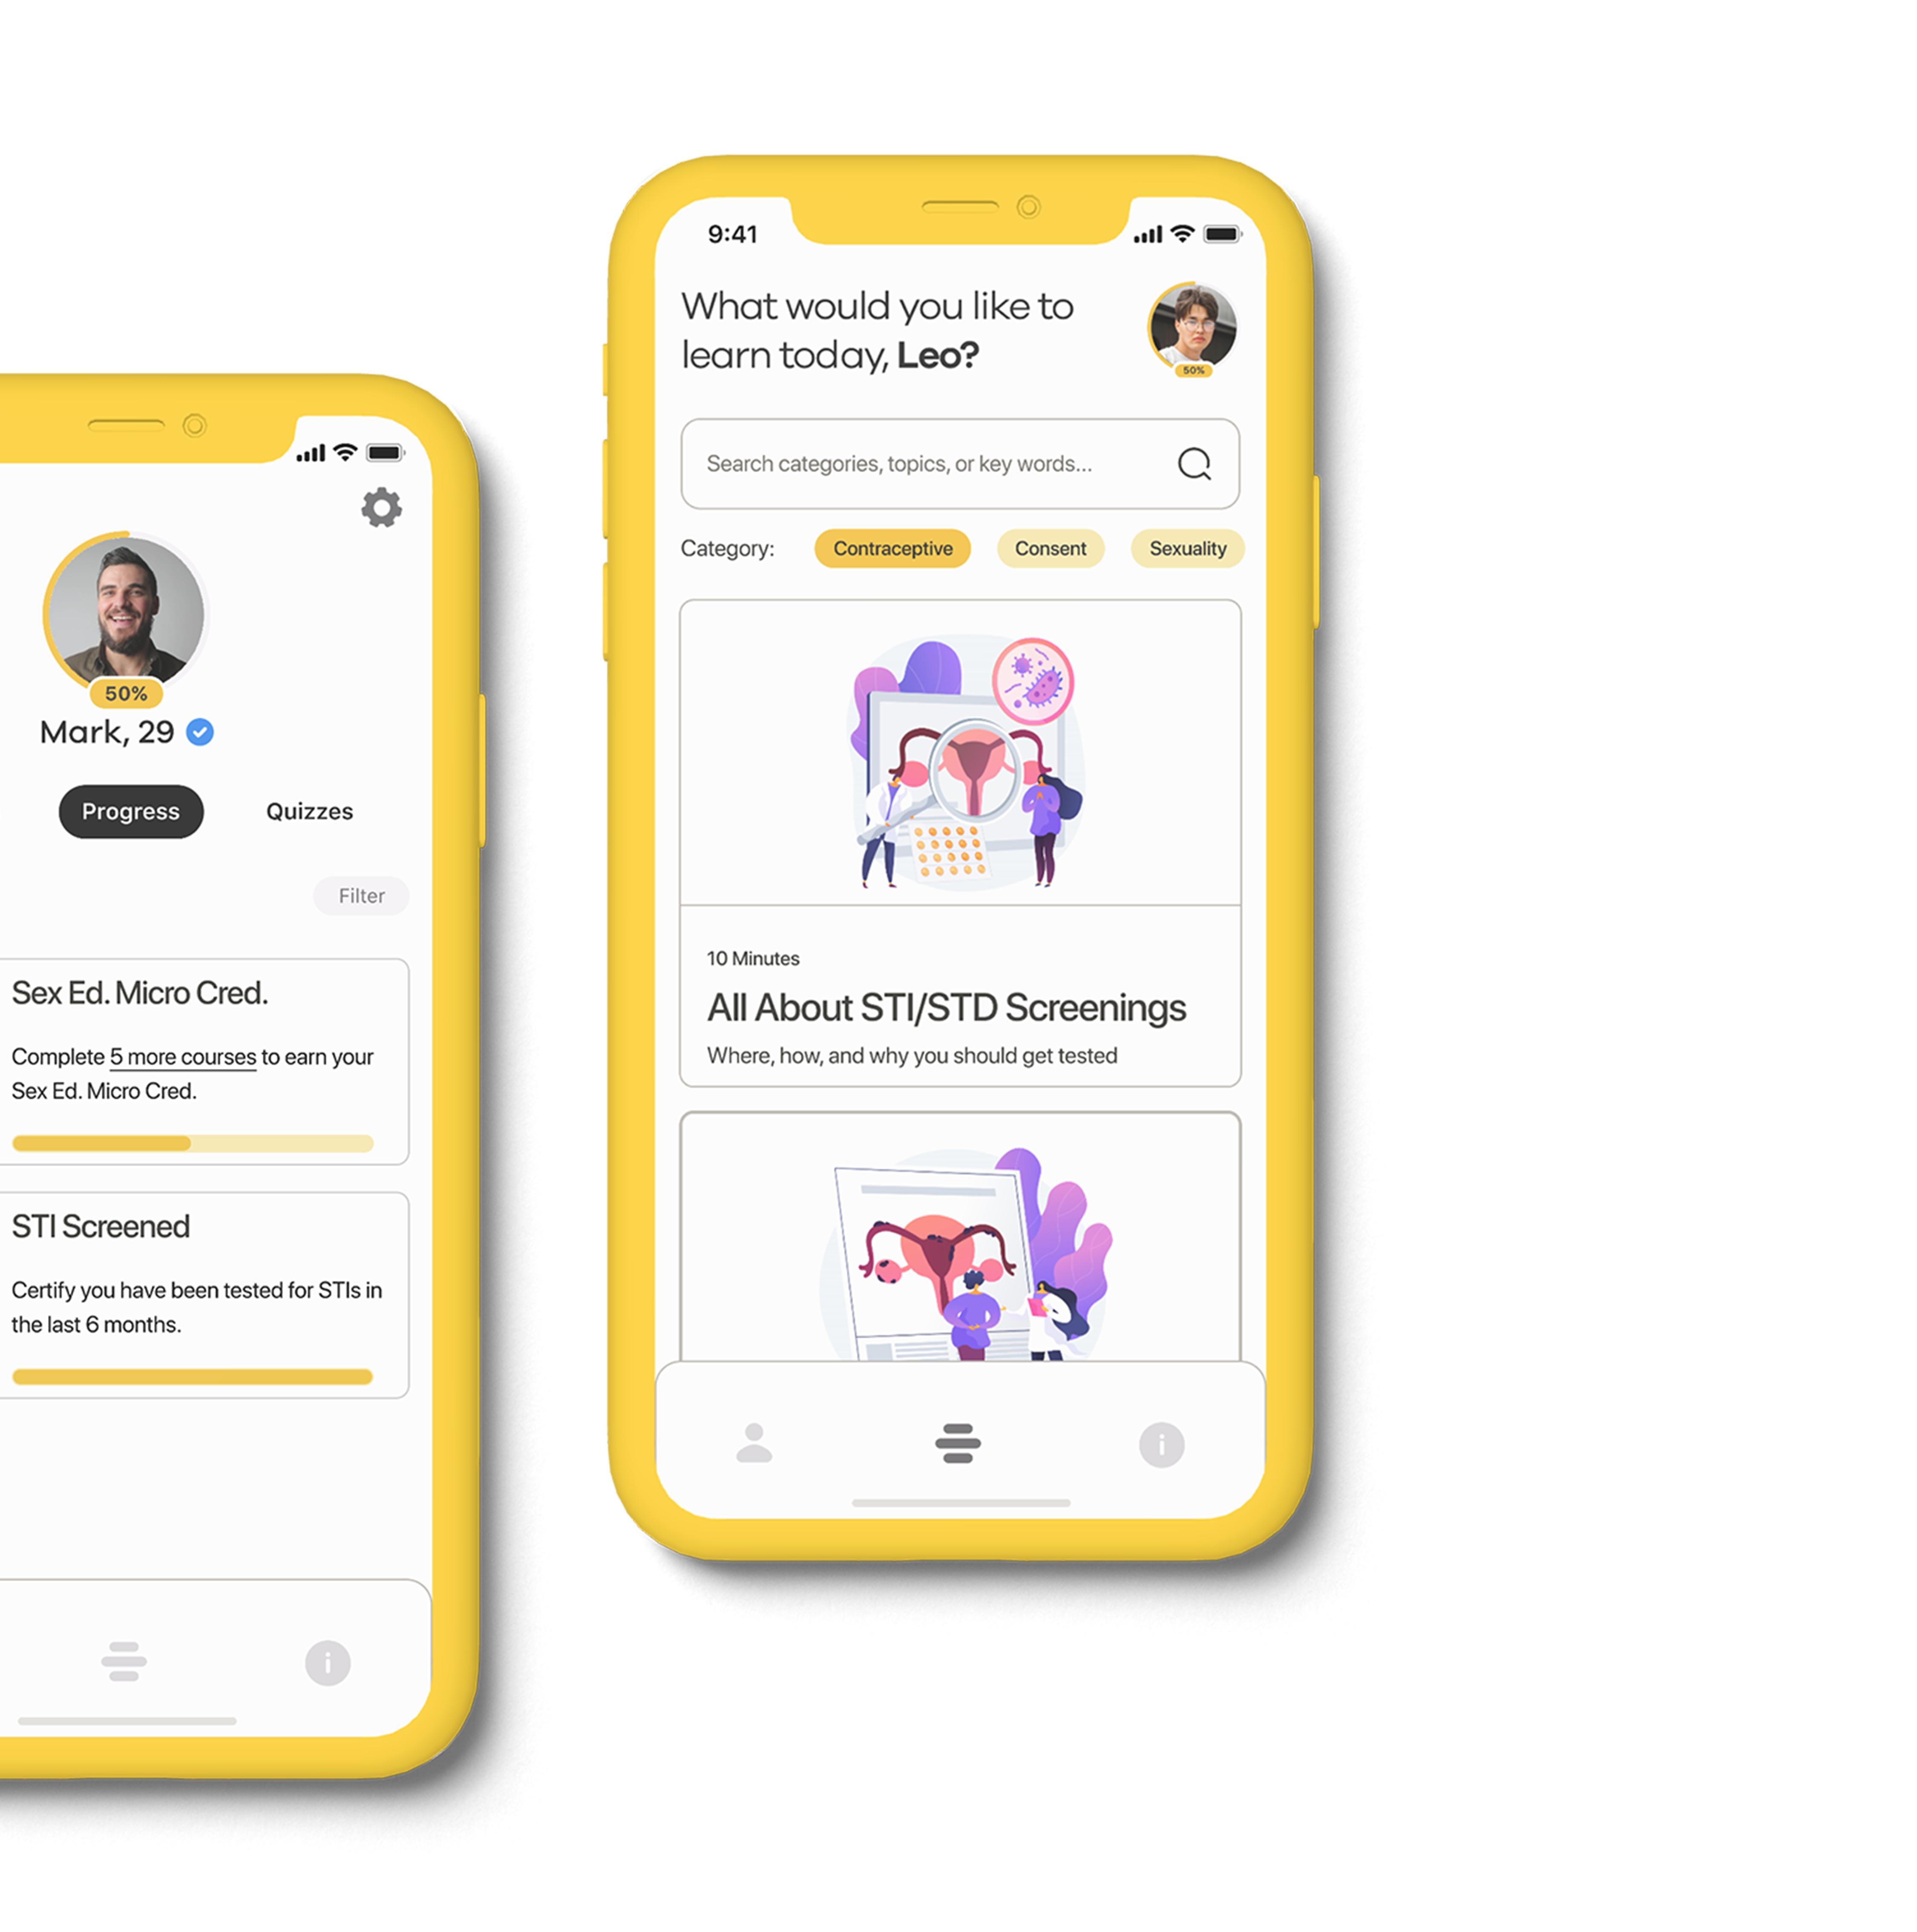 """Two yellow iPhone X screens displaying a graphical interfaces. The left interface is cut off by the computer screen vertically to display only half of the device, showing a user named Mark's profile on the Progress tab. The device to the right of this displays a user named Leo on his course page. The interface asks at the top """"what would you like to learn today, Leo?"""" The screen displays that he is looking at courses under the """"contraceptive"""" section, which shows a course called """"All About STI/STD Screenings""""."""